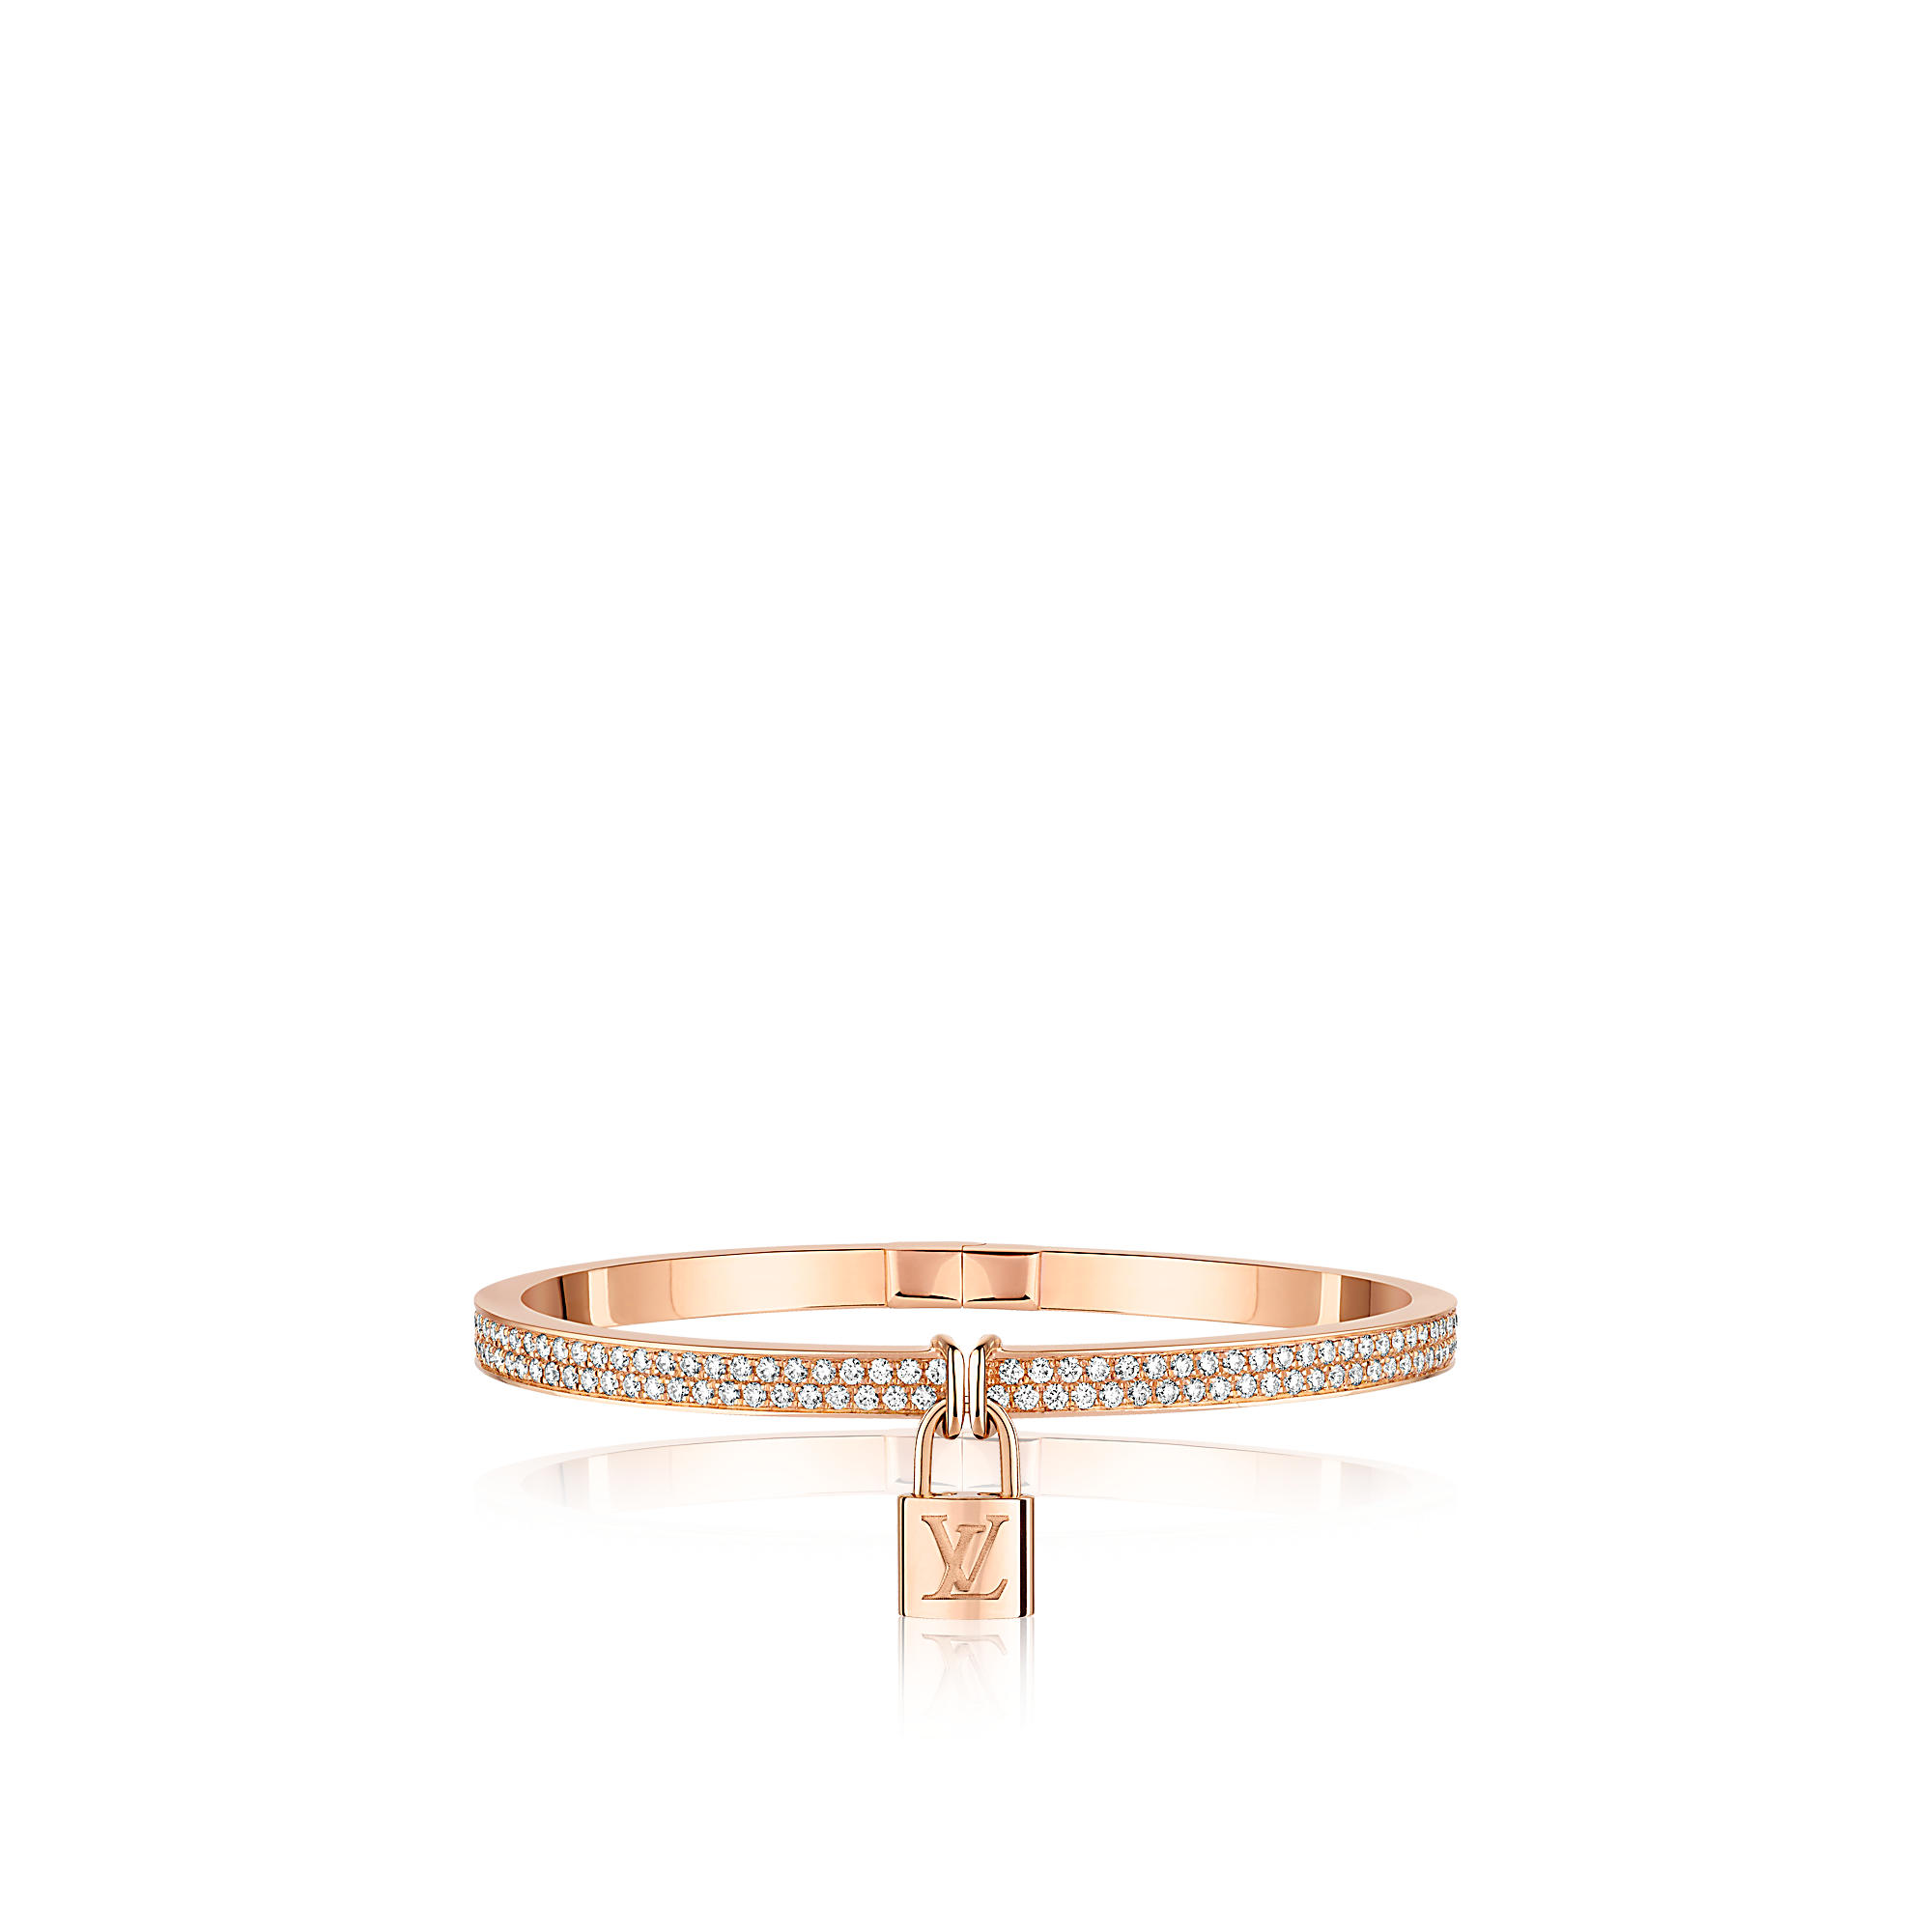 Louis Vuitton Q95417 Bracciale Lockit,oro rosa e diamanti